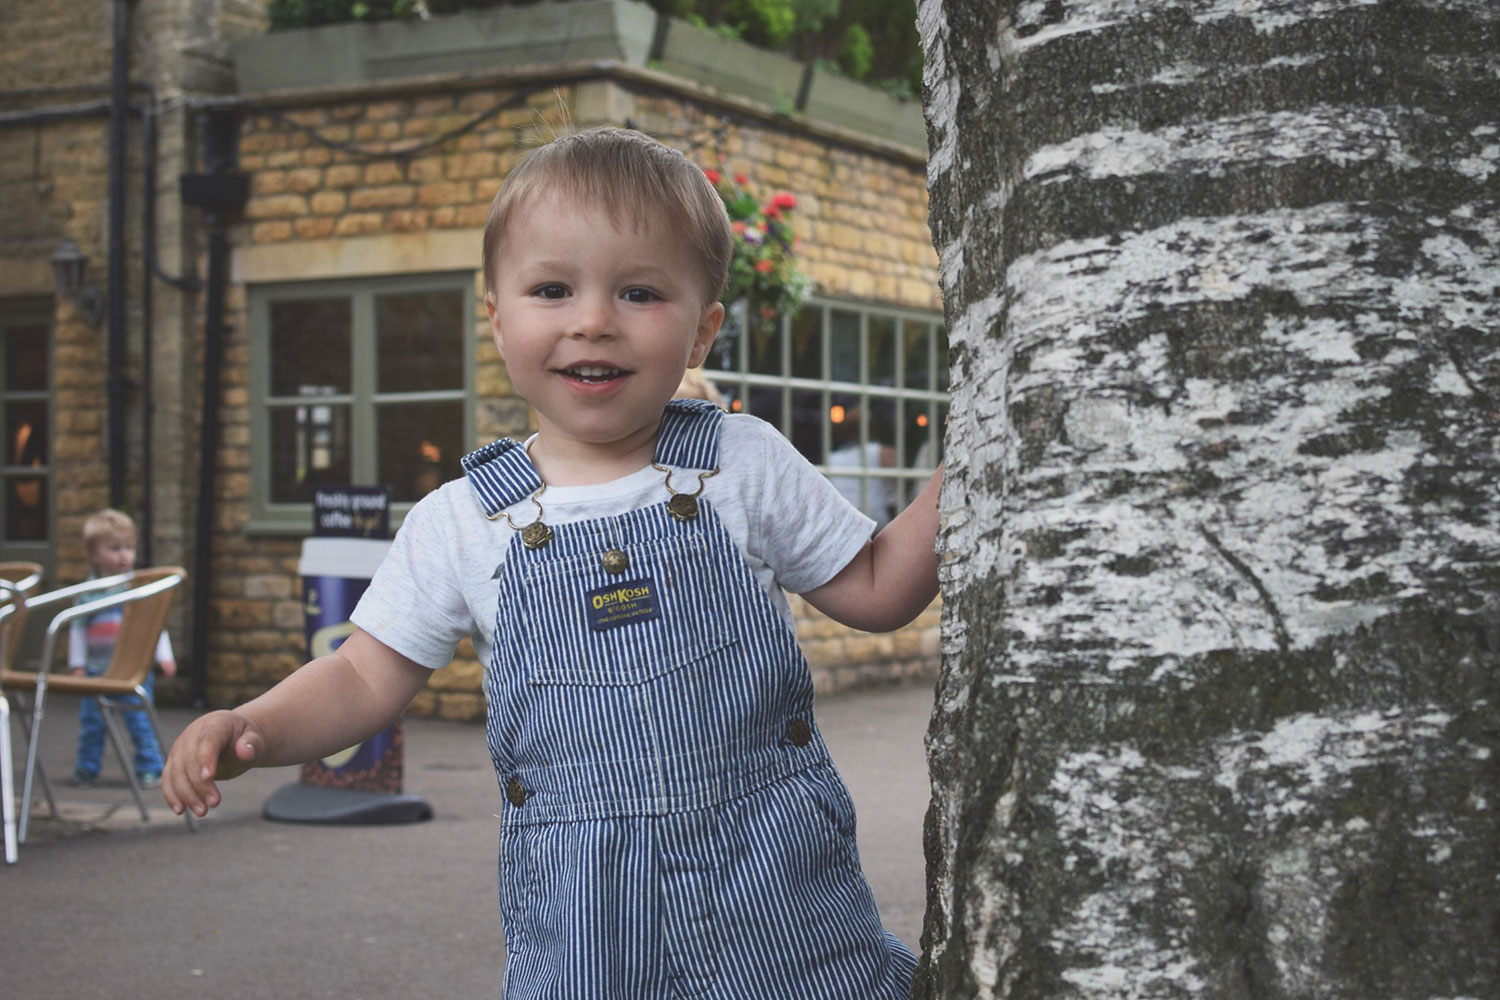 Celebrating the Daddies at Bourton-on-the-Water - Toddler boy posing happily next to tree wearing H&M ledge hate and Osh-Kosh stripy blue dungarees at Bourton-on-the-Water, Cotswolds